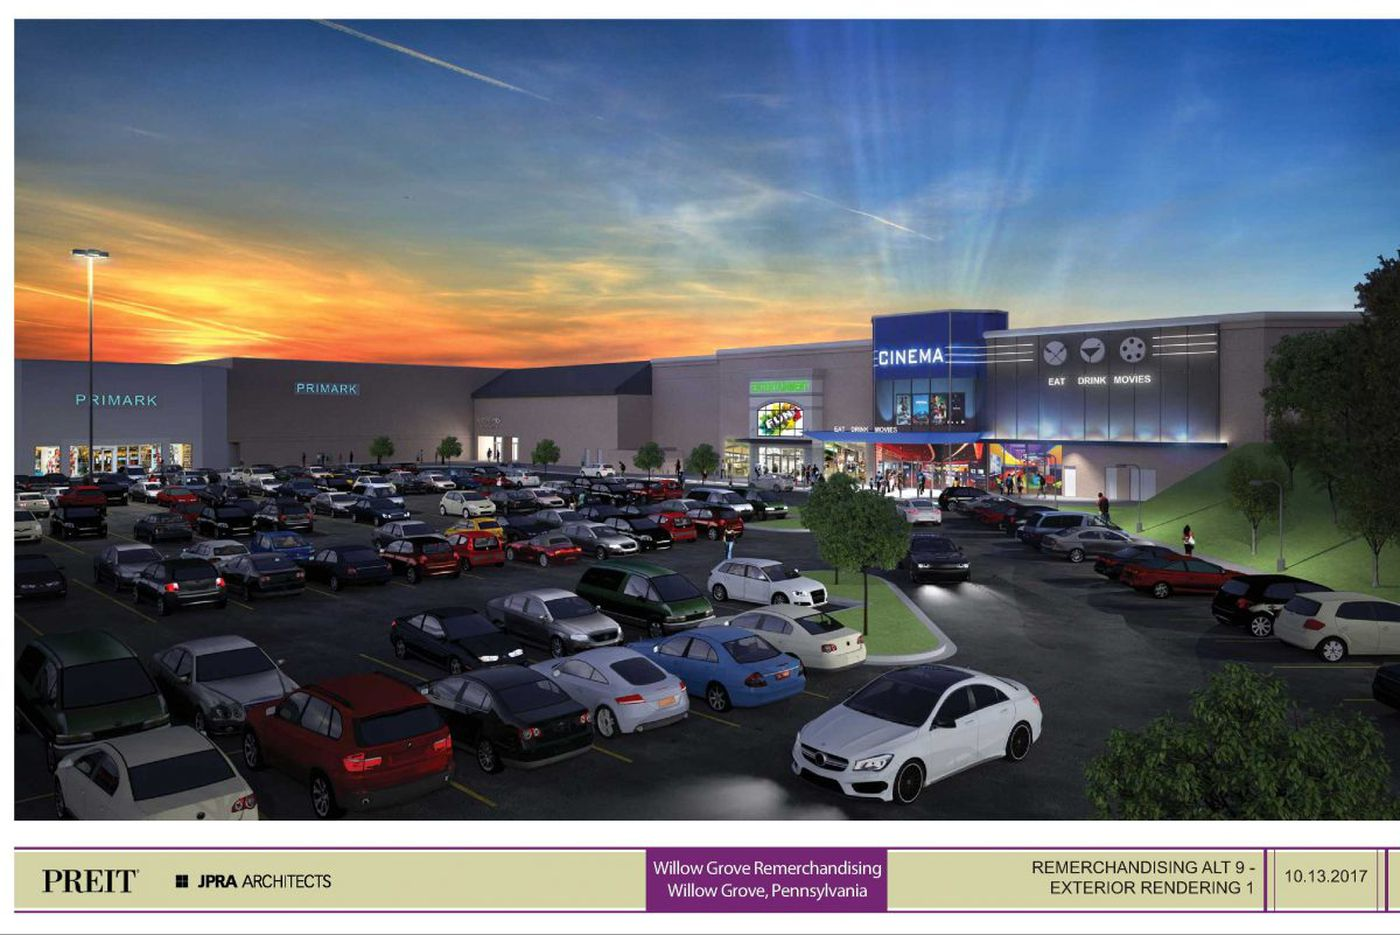 Willow Grove Mall will host Studio Movie Grill: Full dining with first-run movies